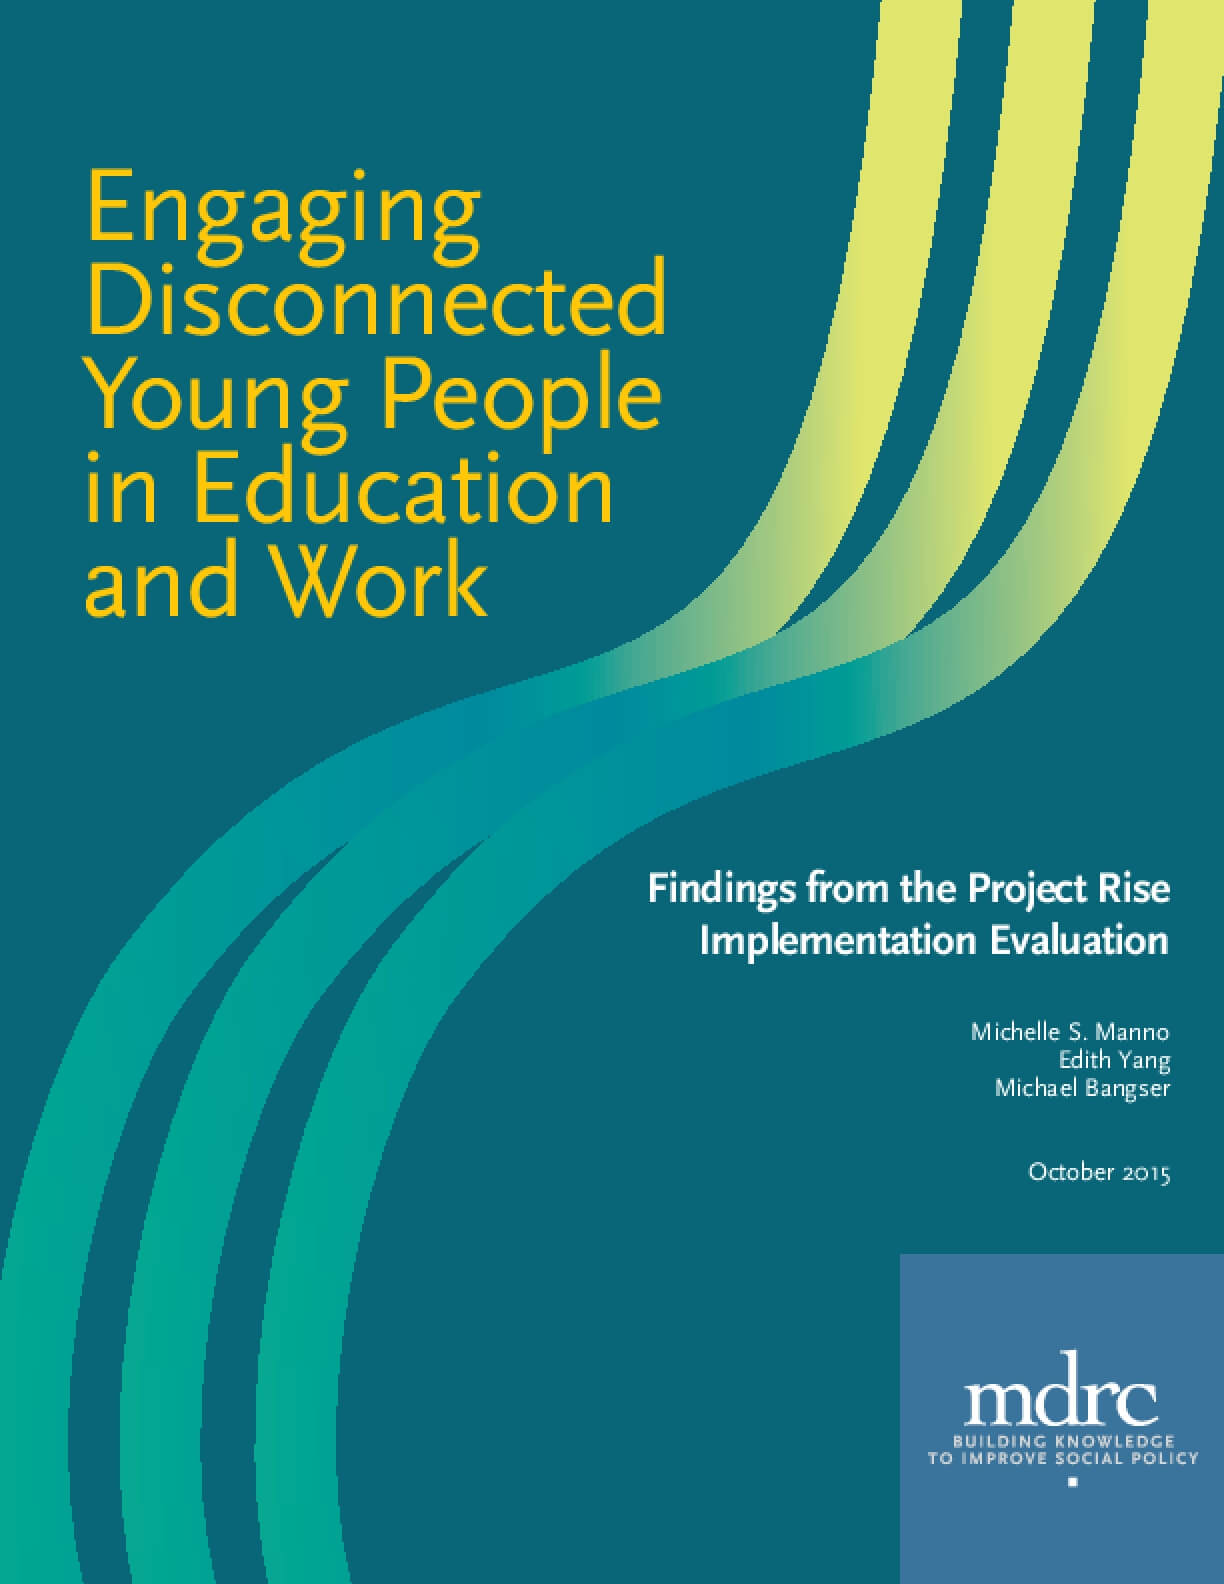 Engaging Disconnected Young People in Education and Work